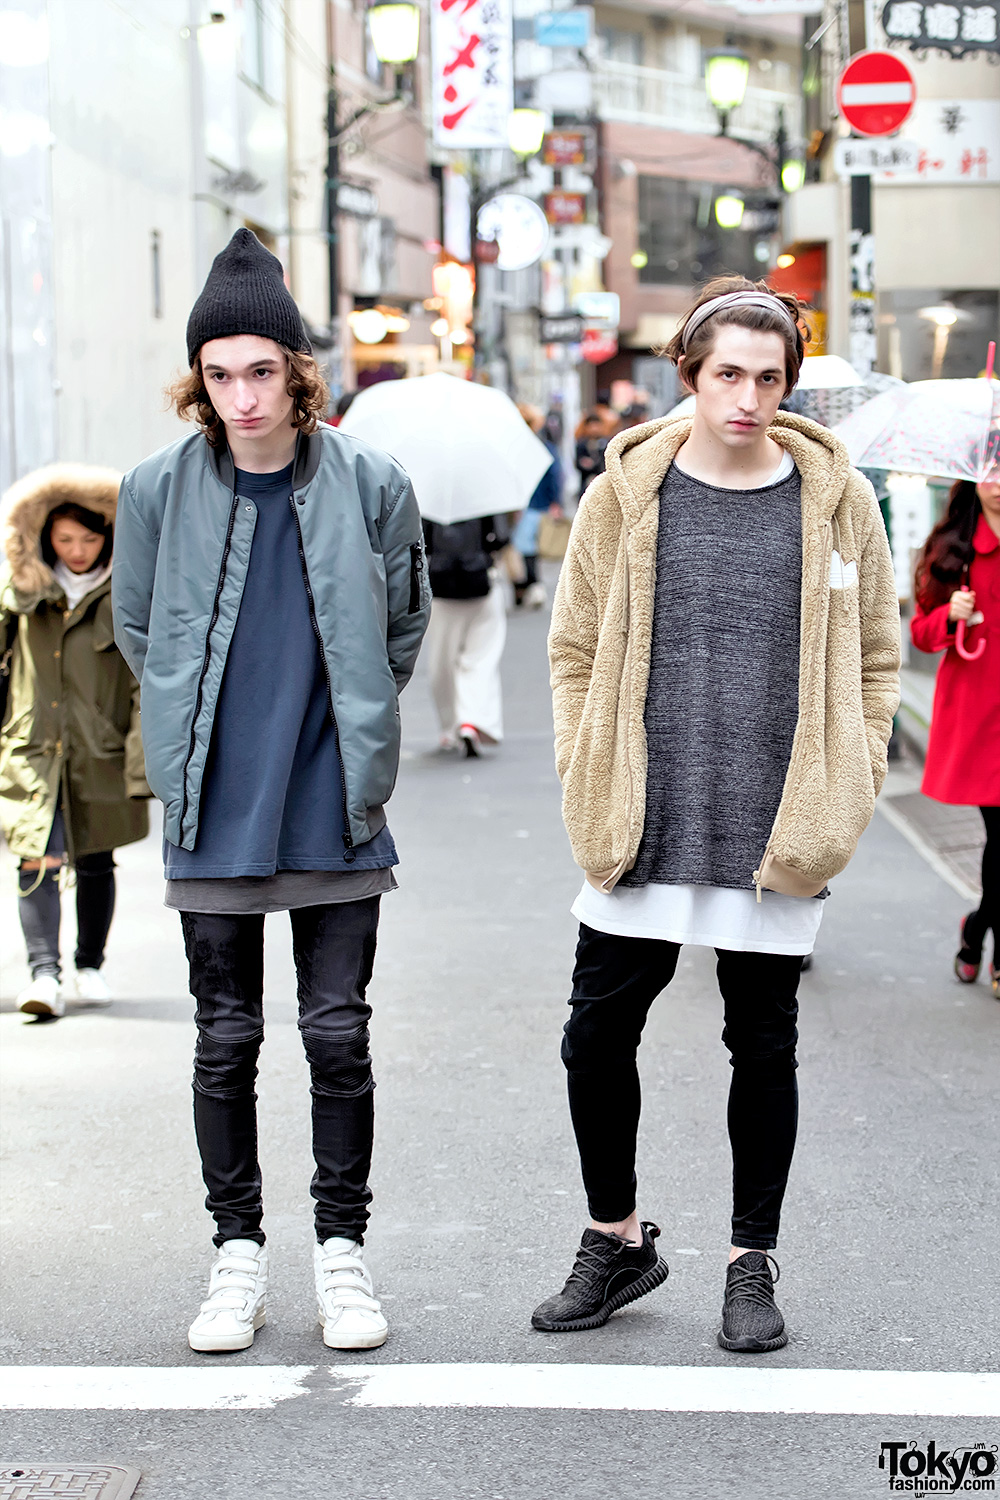 Electronic Musician Porter Robinson & Brother In Harajuku